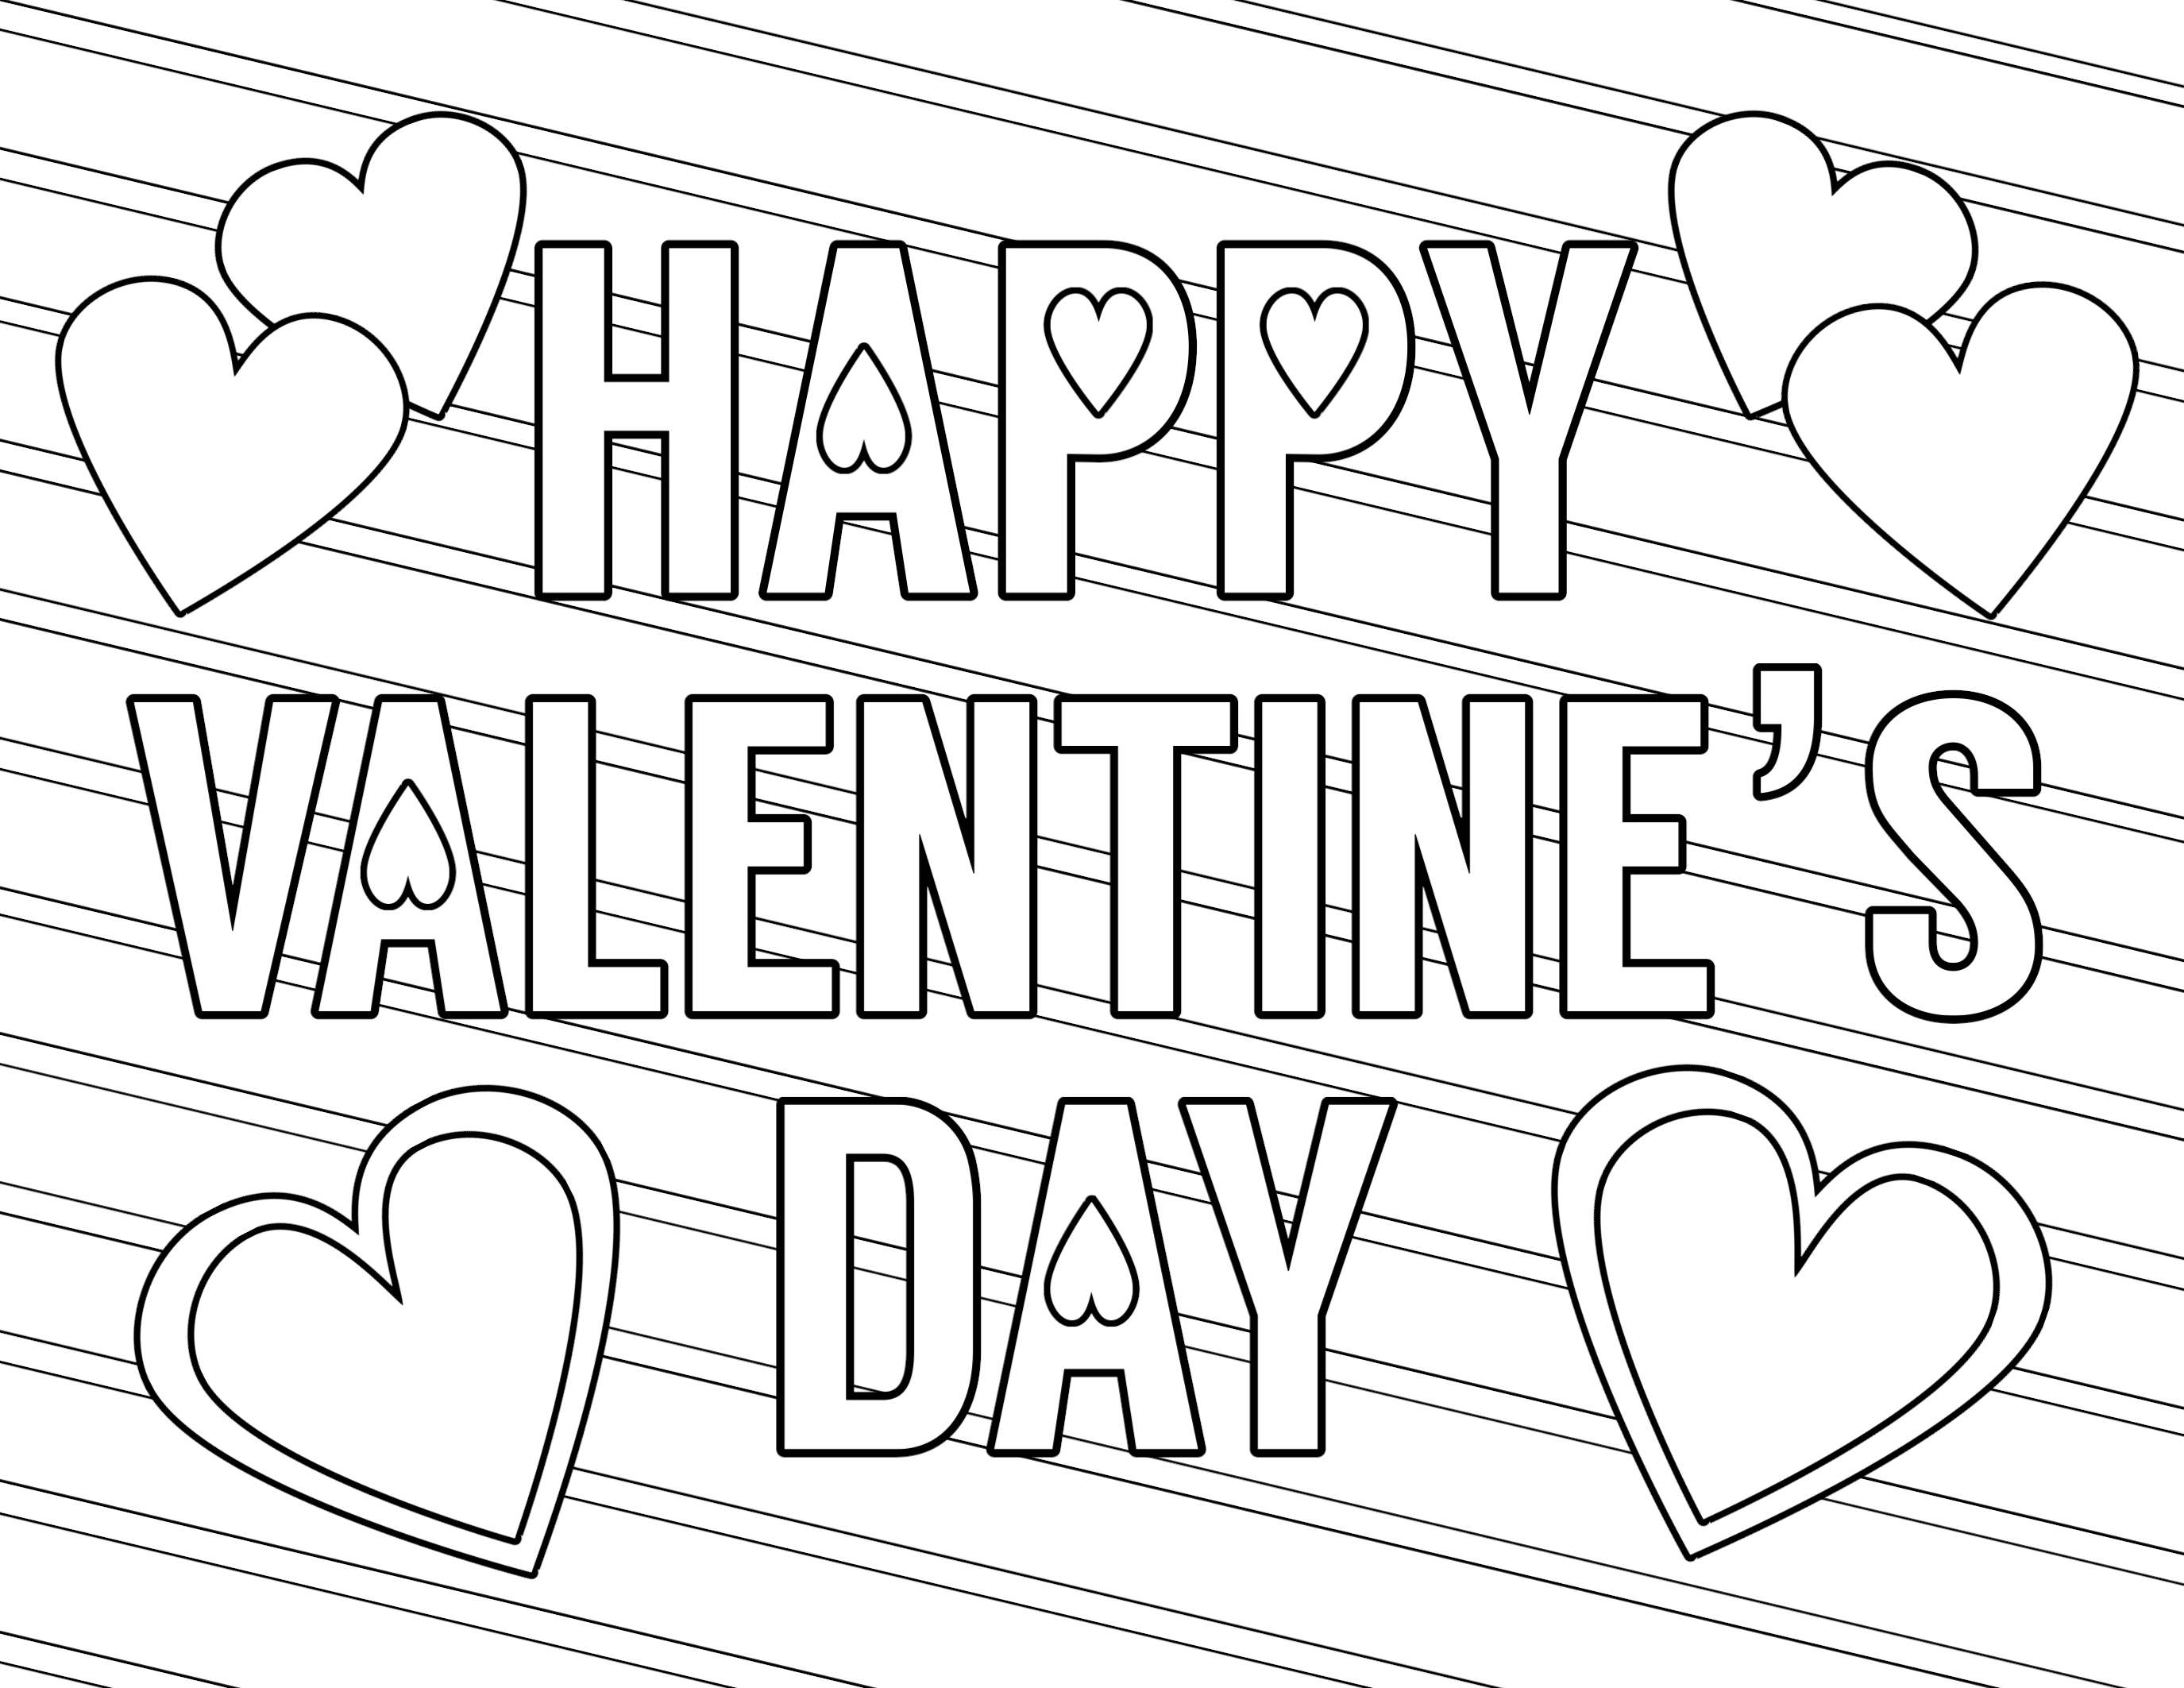 valentines day color pages happy valentines day coloring pages printable games sketch day valentines pages color